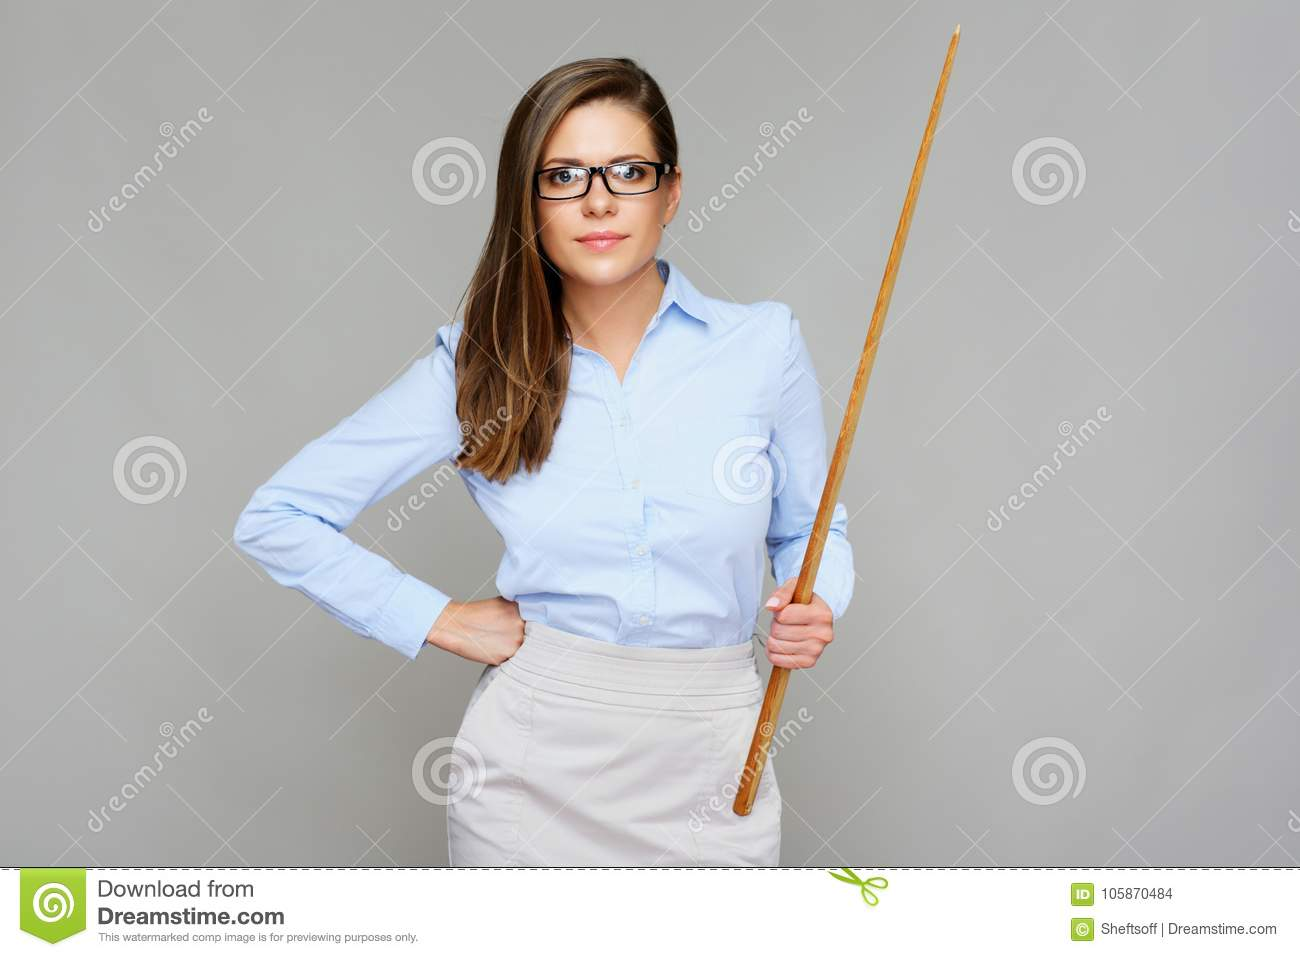 Bad teacher. Woman holding wooden pointer.